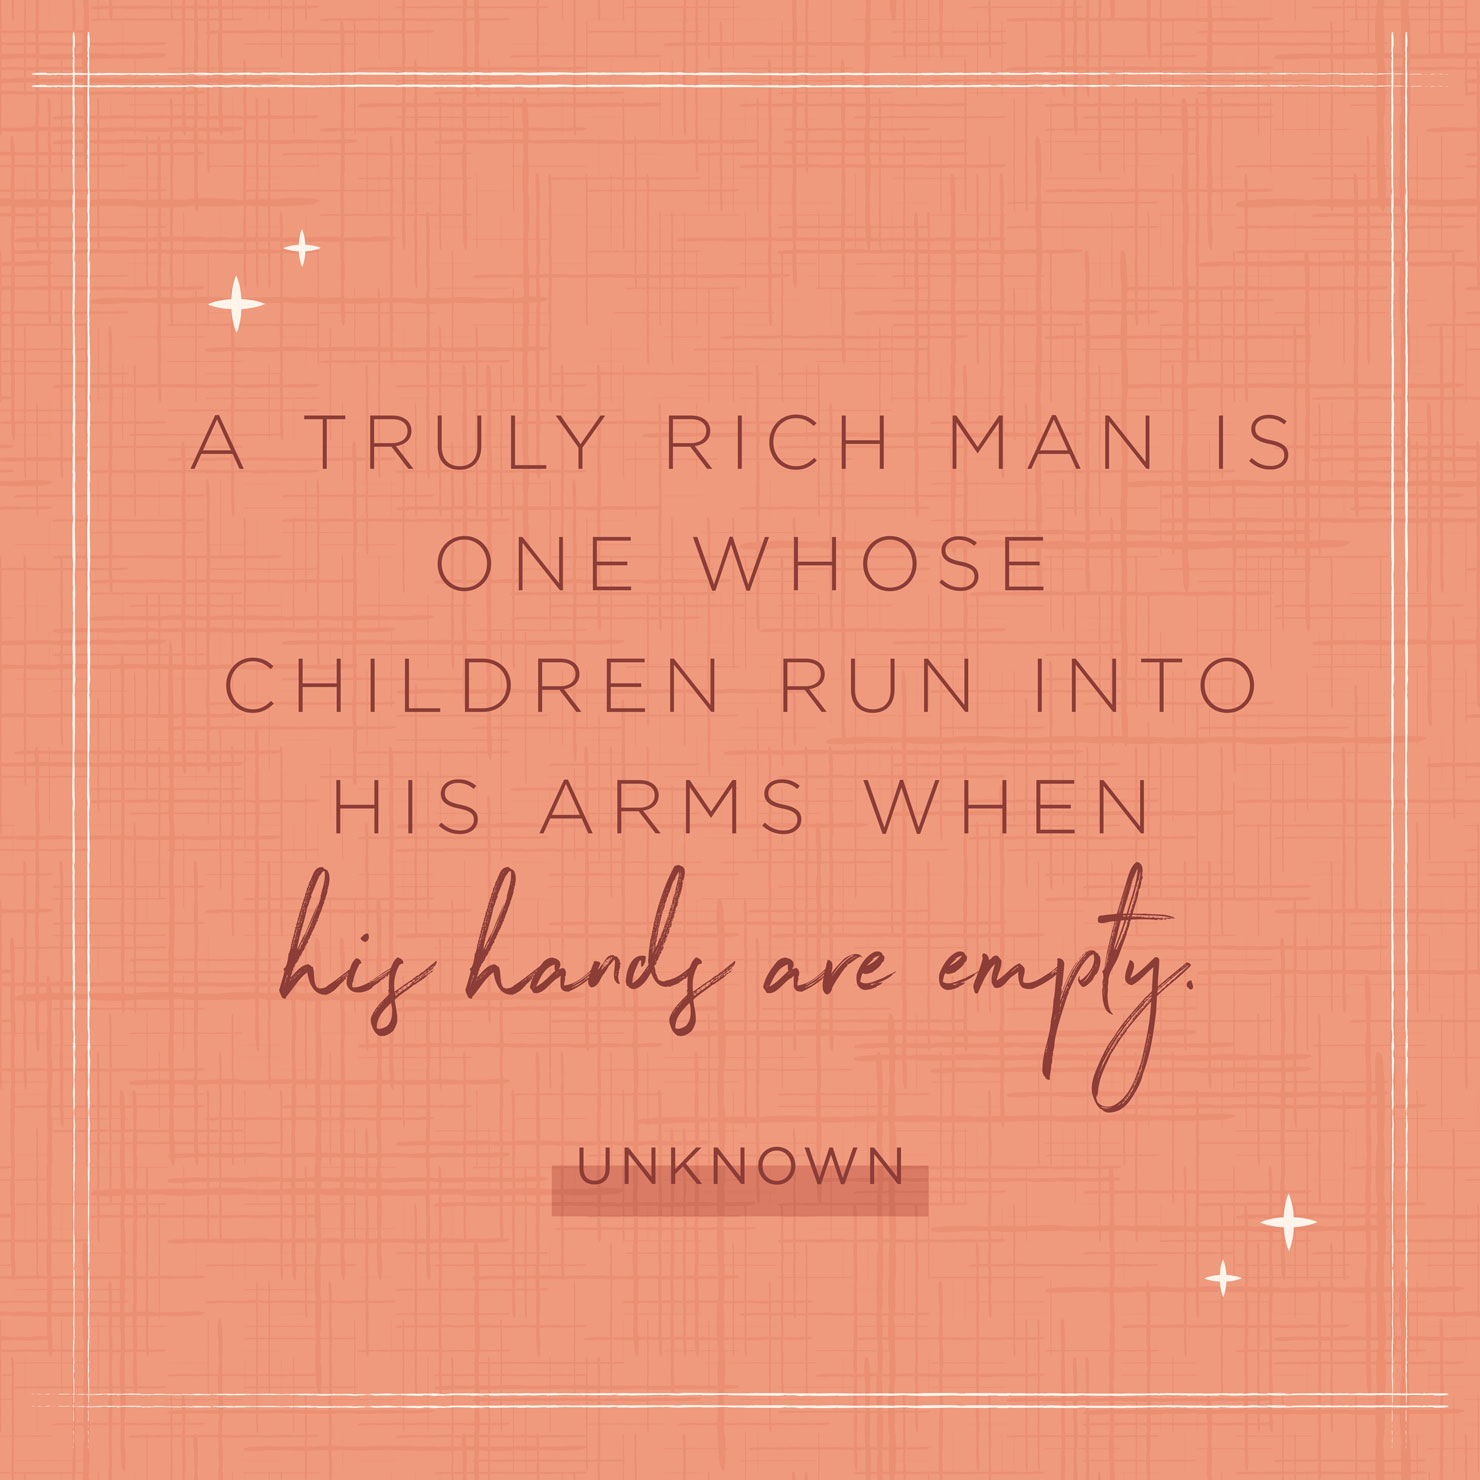 fathers's day quotes